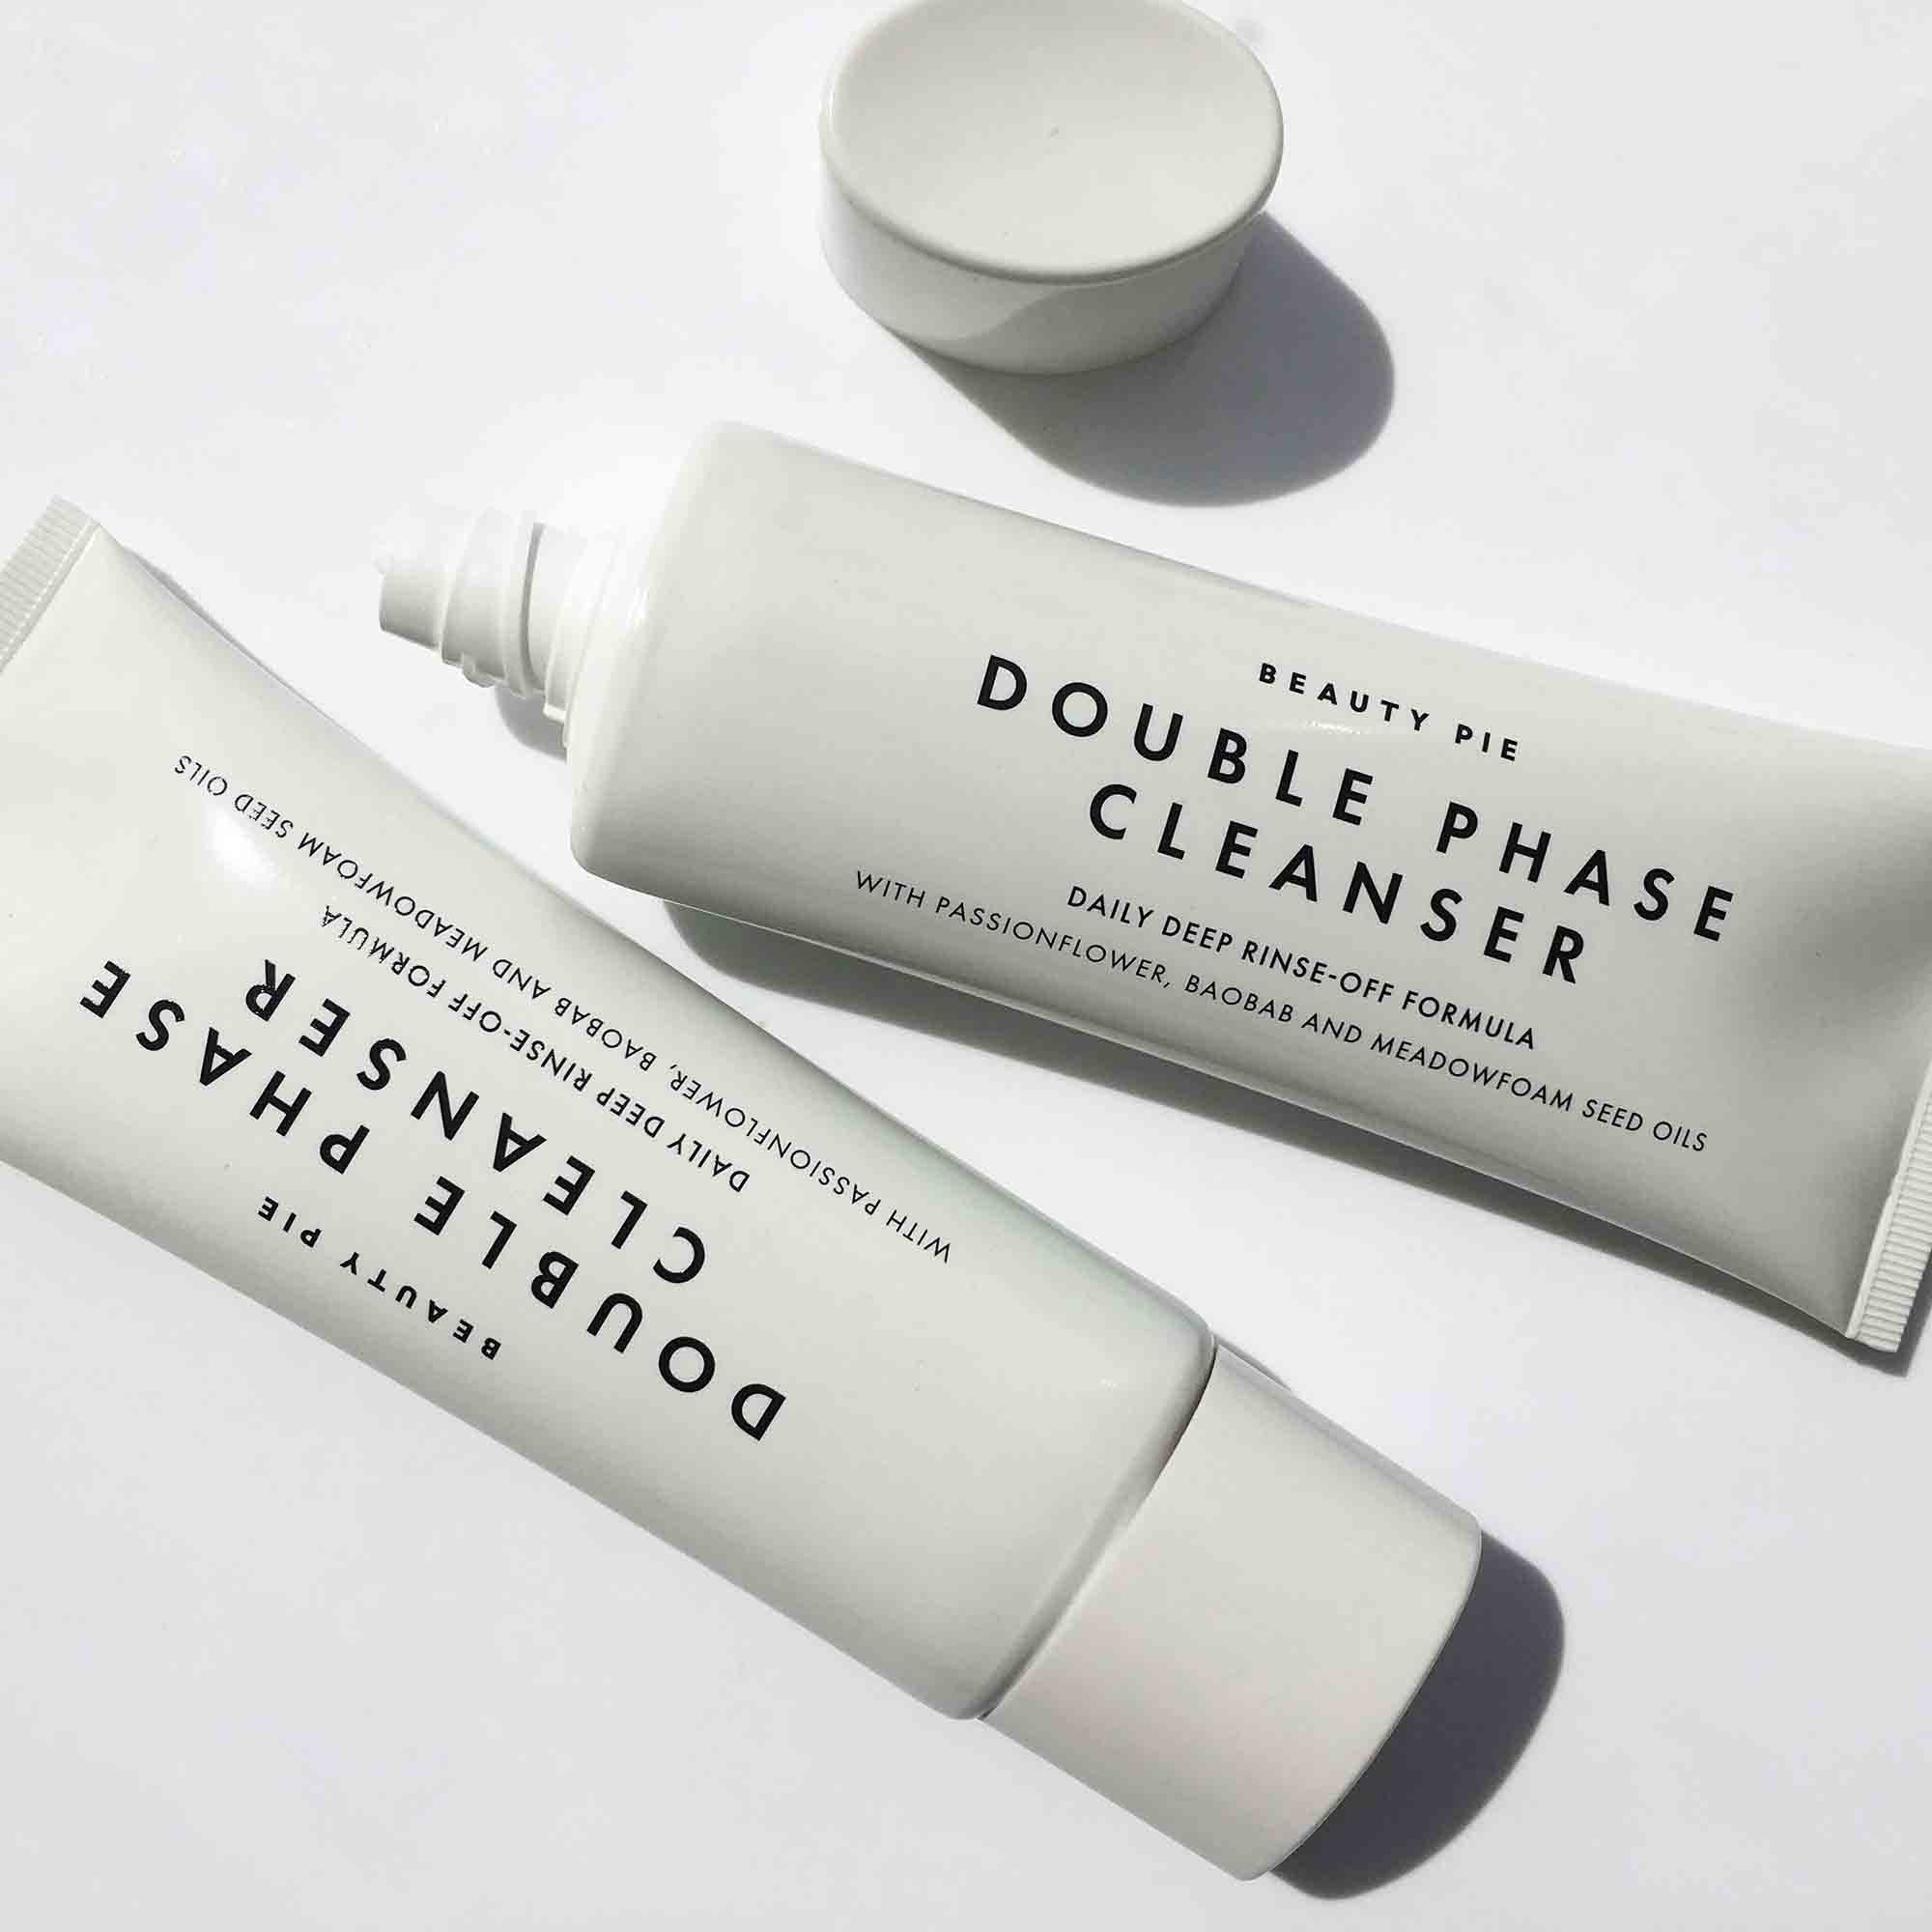 Two tubes of cleanser on white background